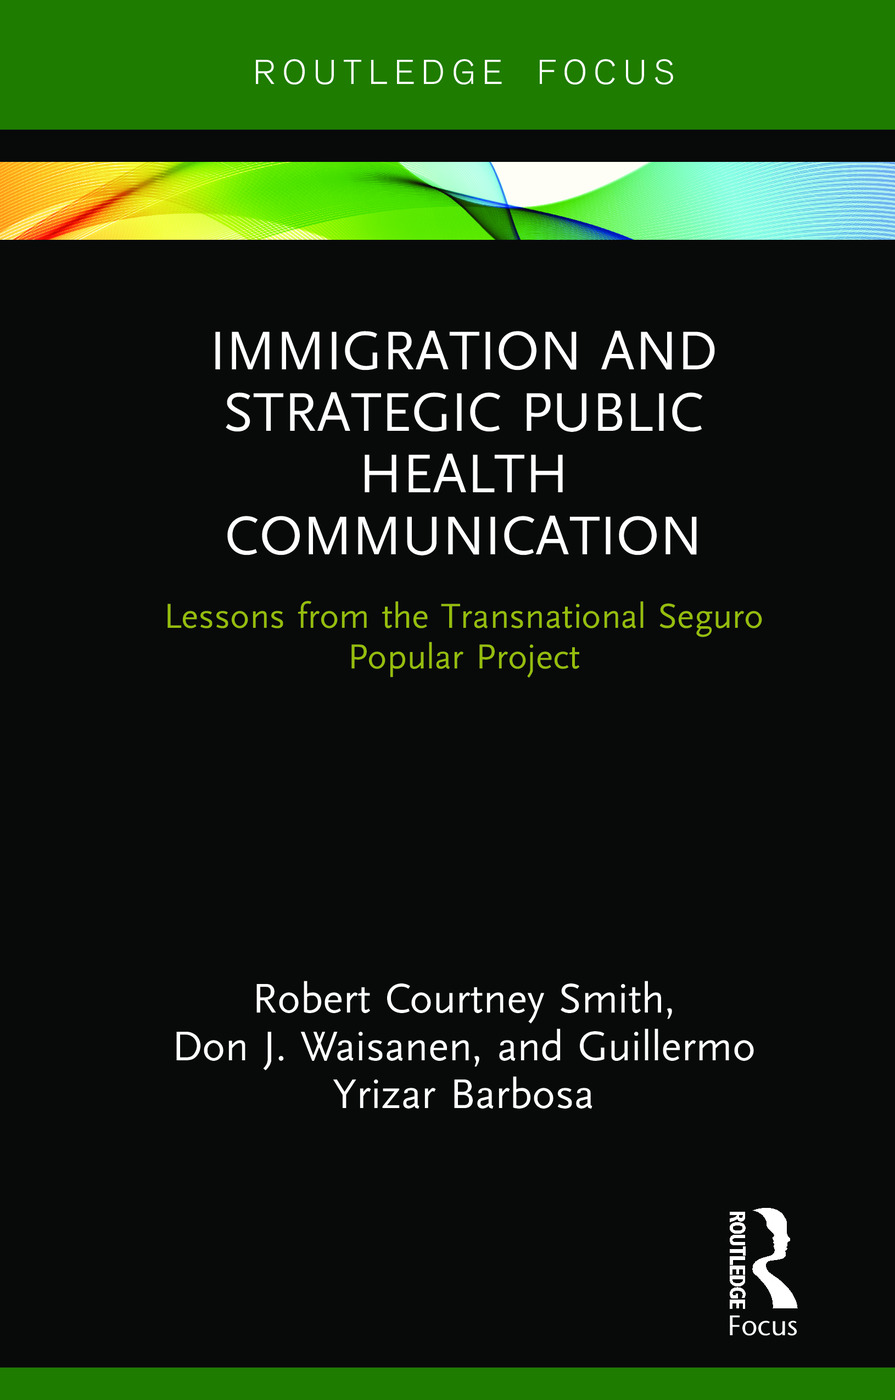 Immigration and Strategic Public Health Communication: Lessons from the Transnational Seguro Popular Project book cover